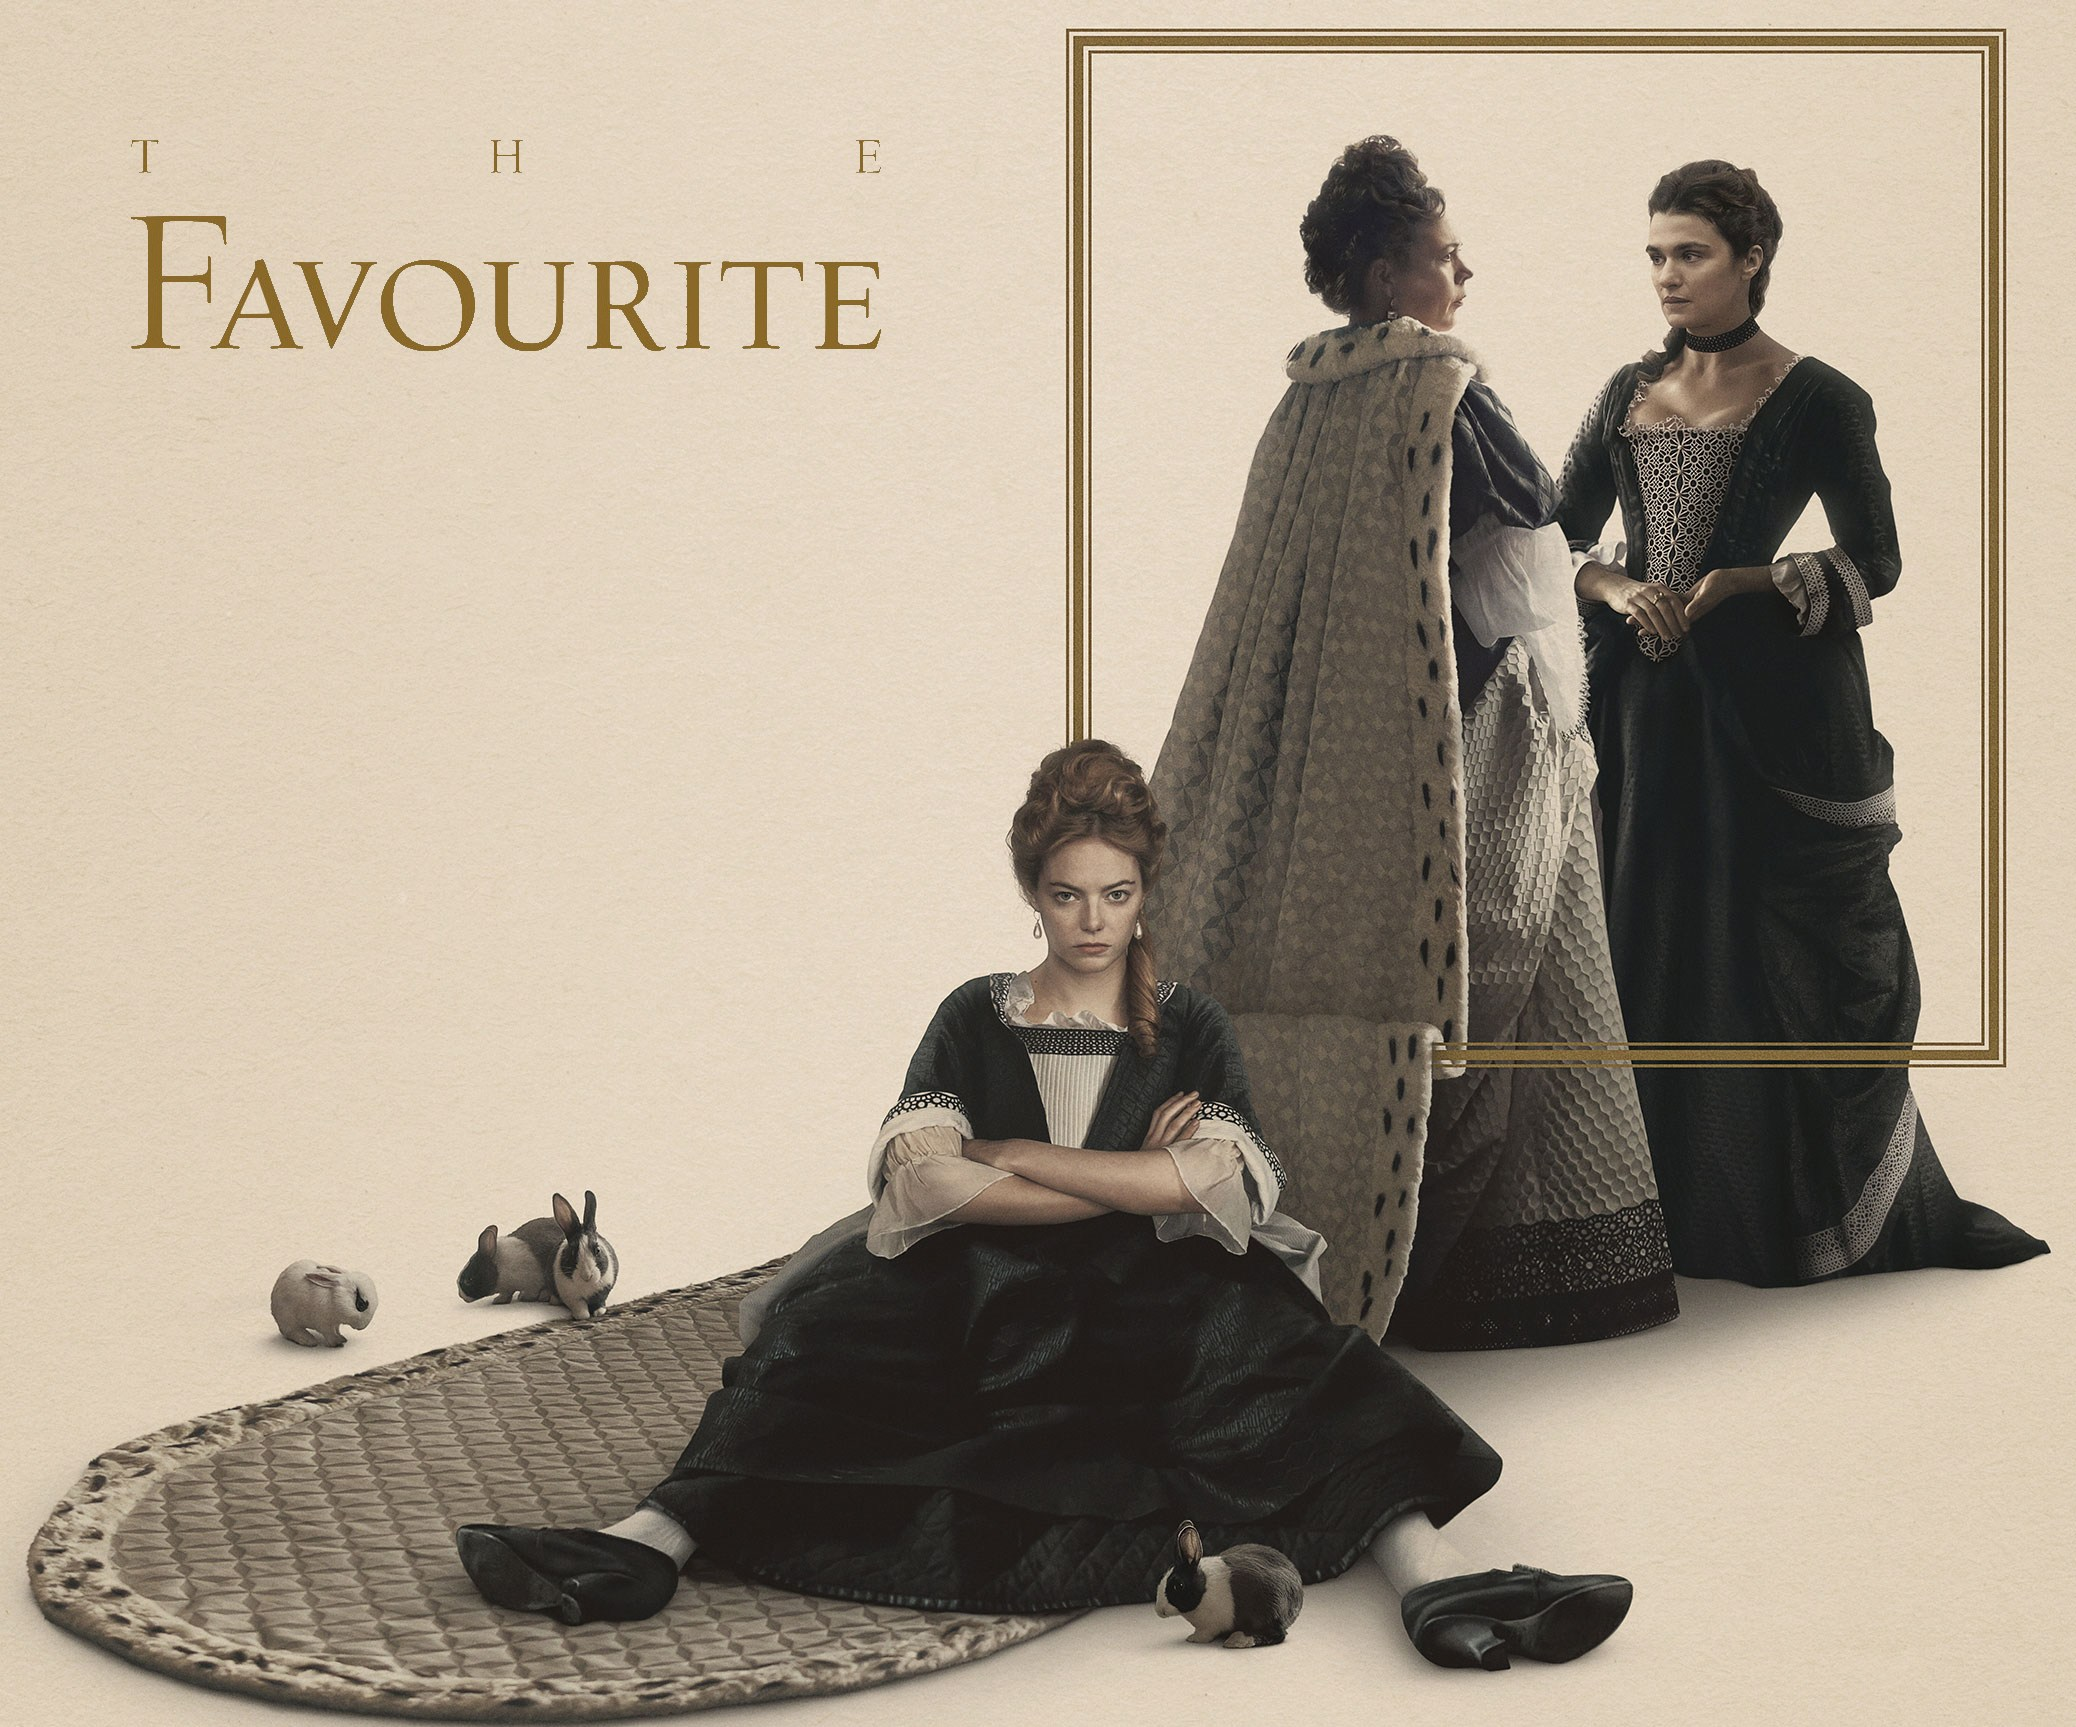 The Favourite, de Yorgos Lanthimos